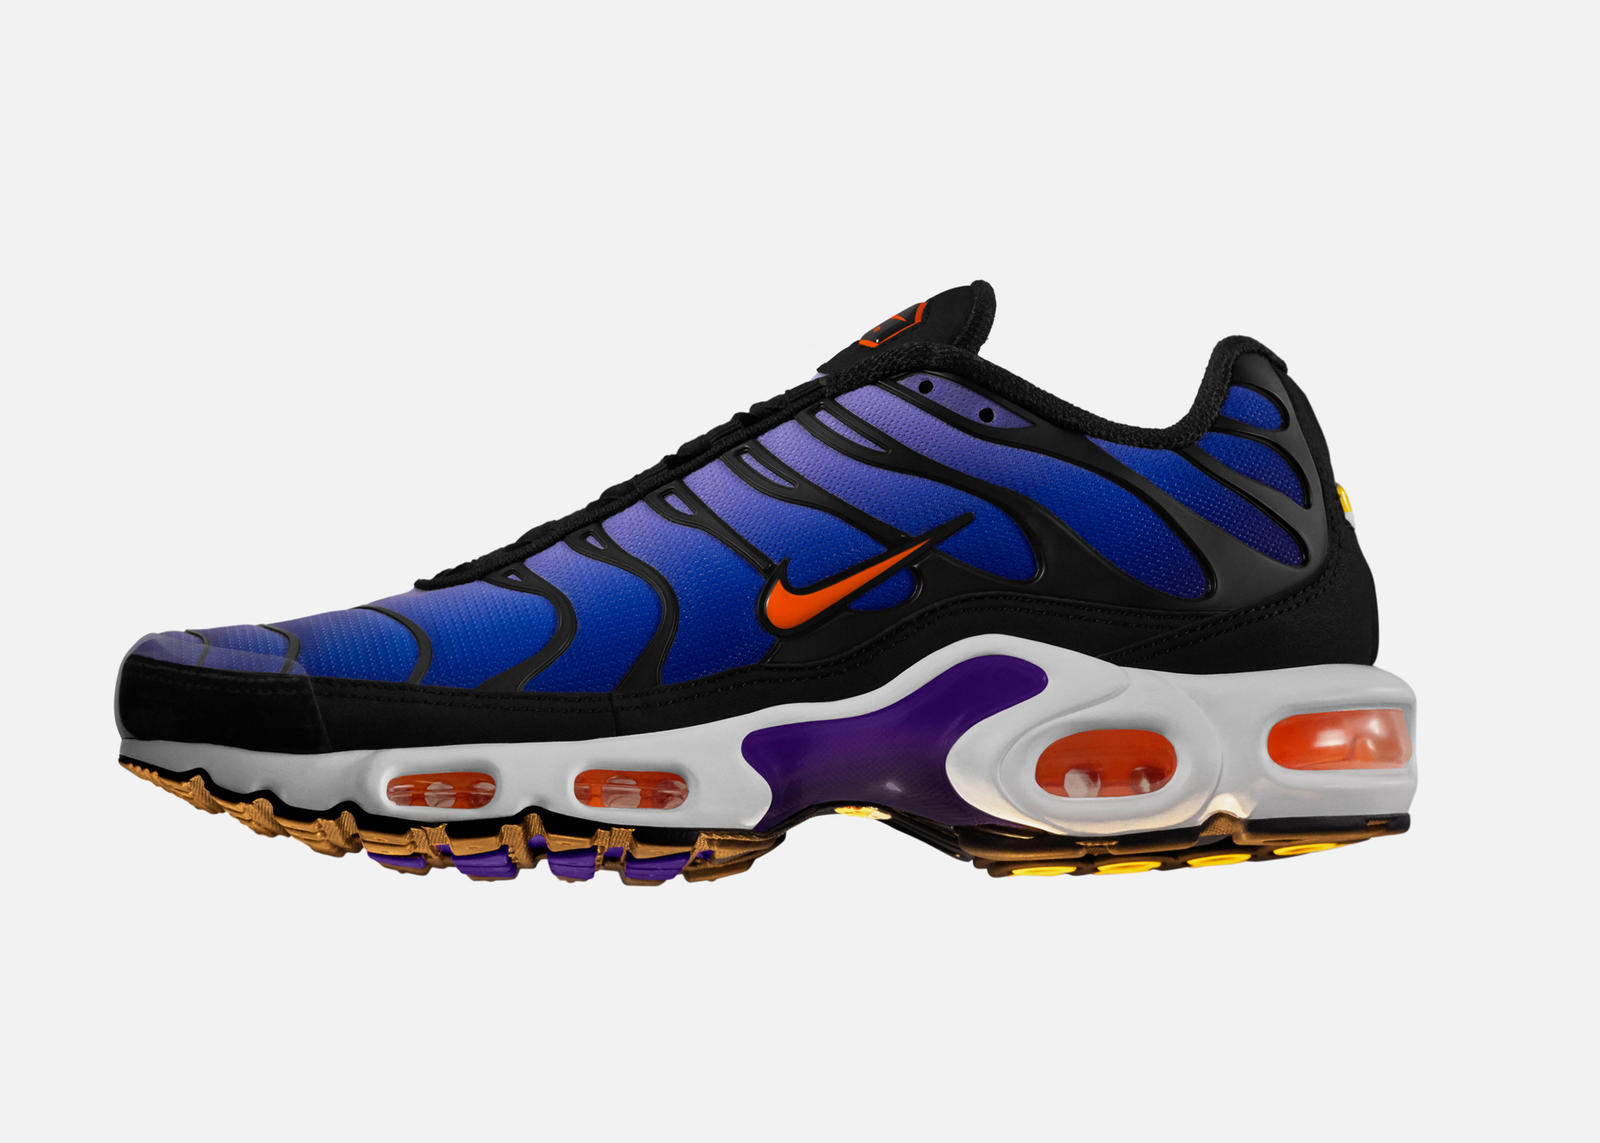 a766bb0c28f Nike Air Max Plus TN History - Nike News